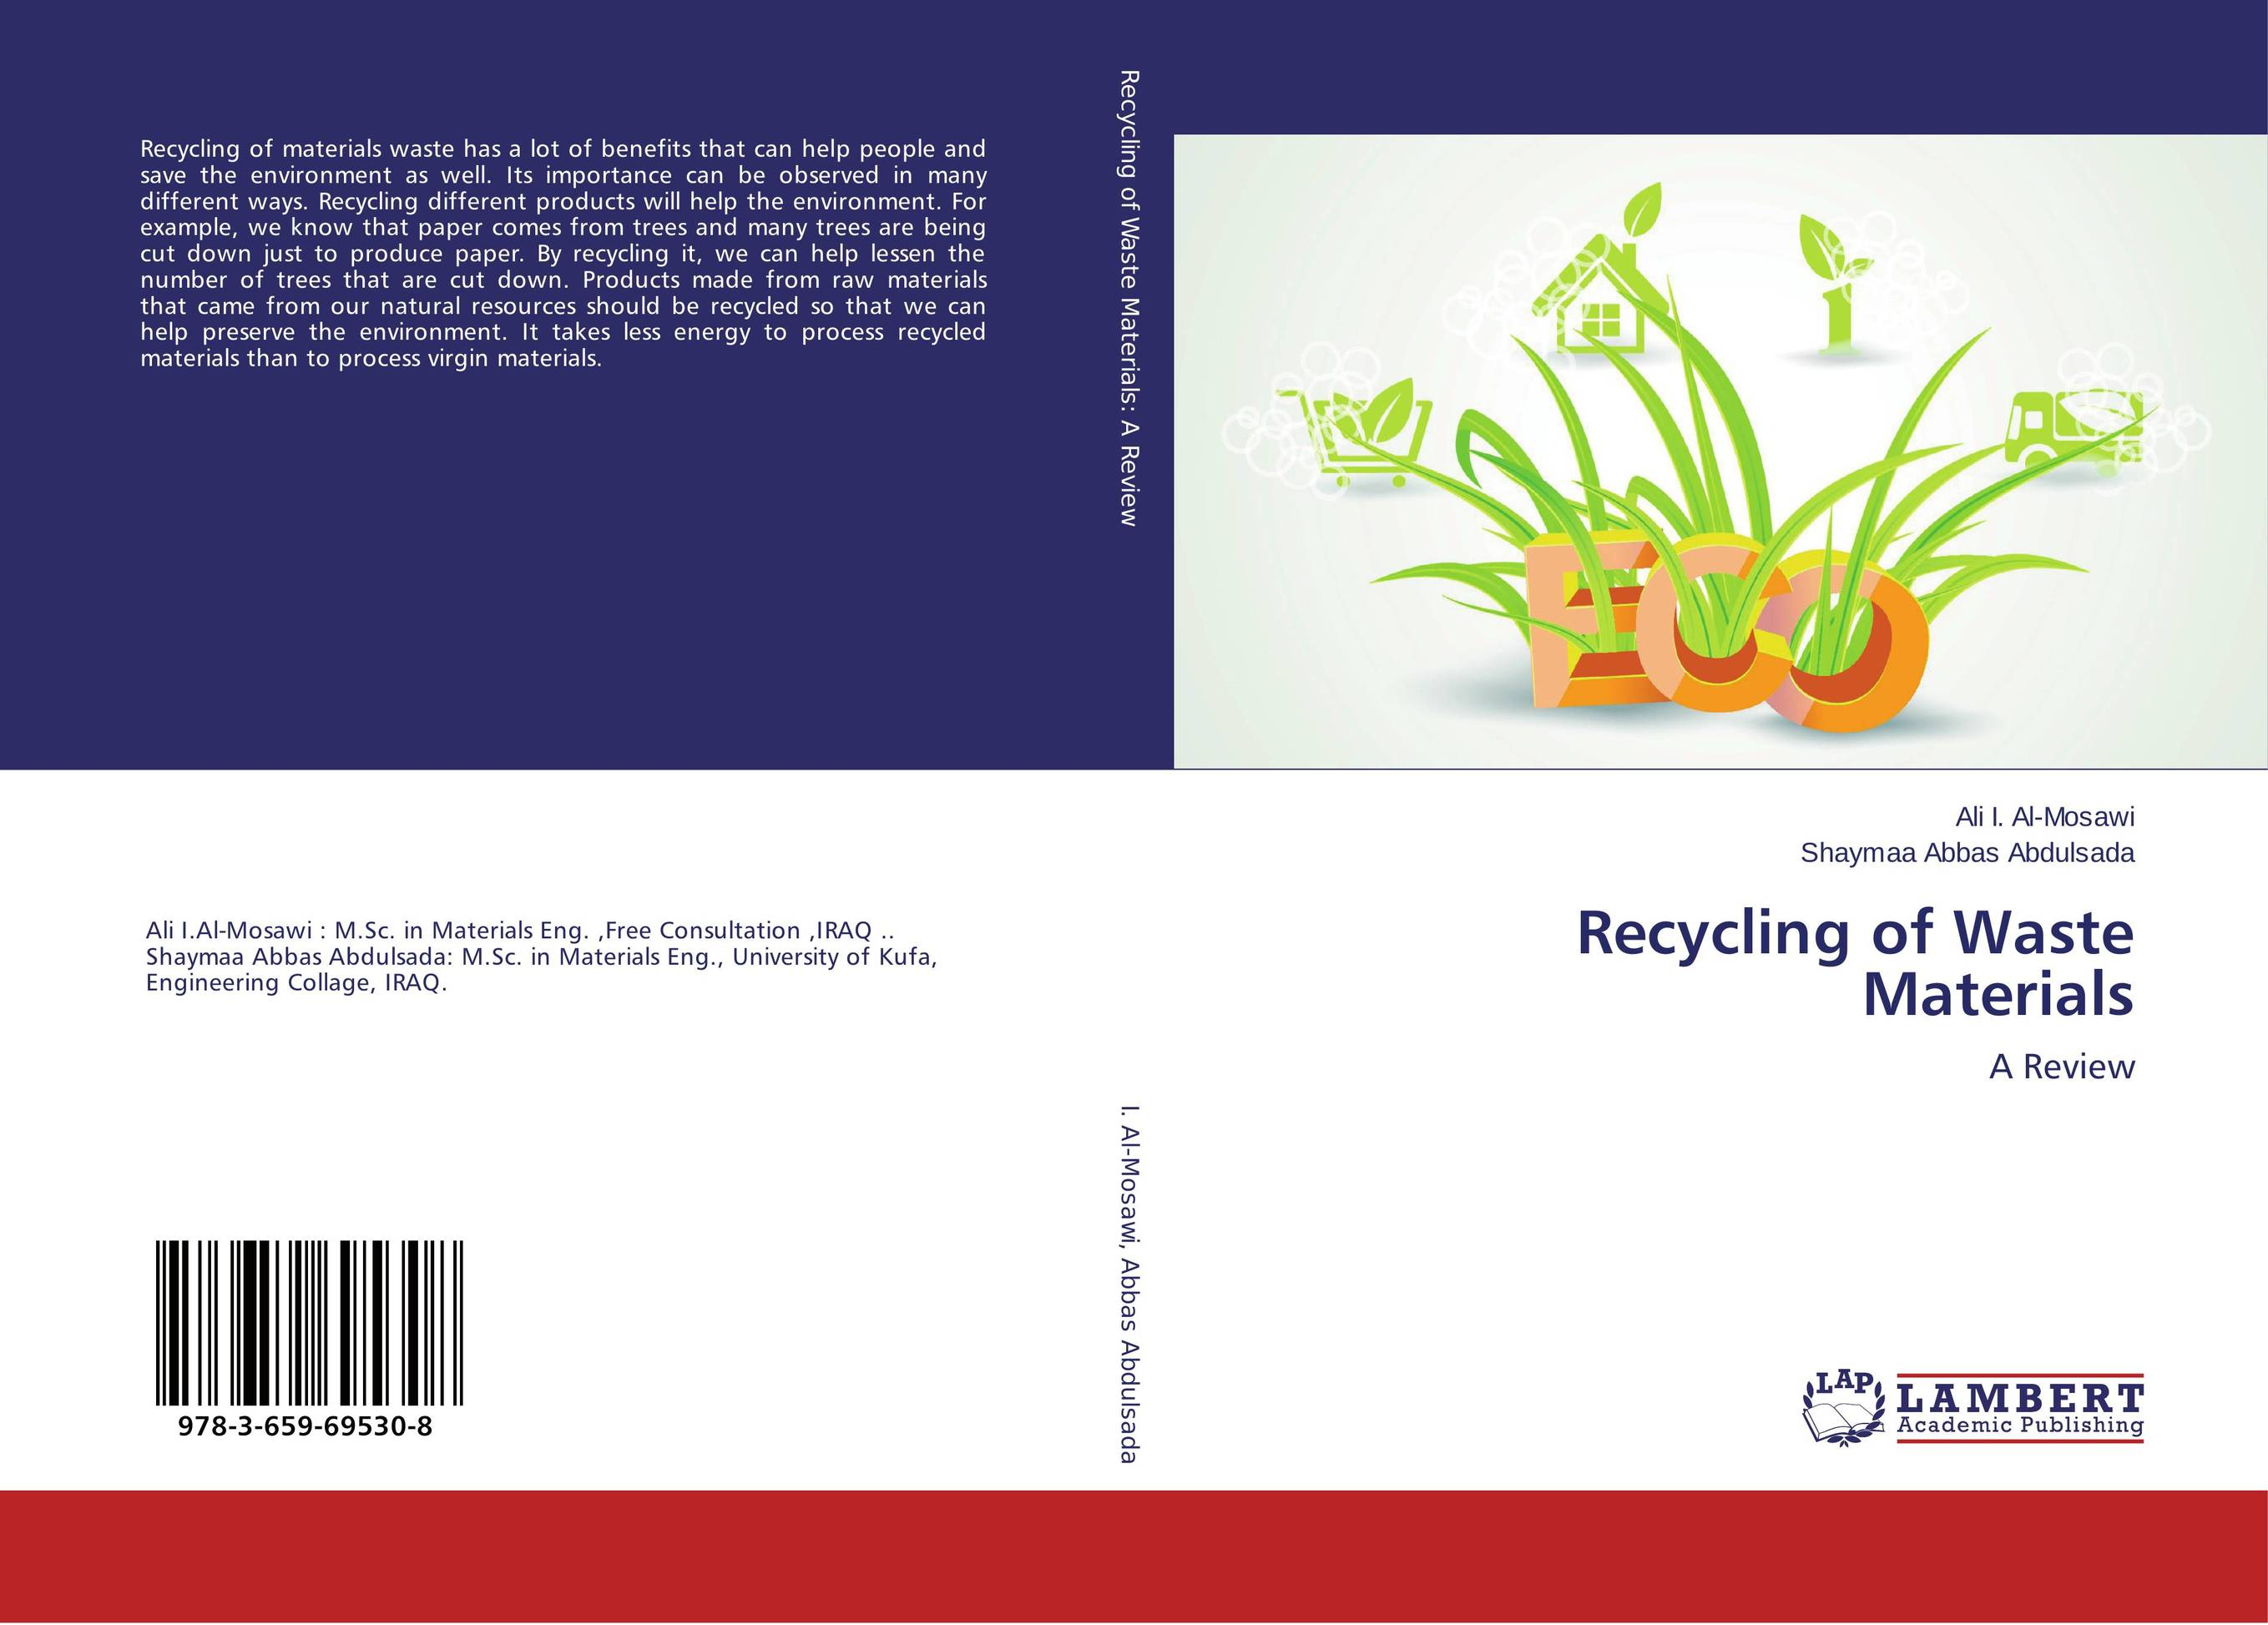 Recycling of Waste Materials recycling of waste materials